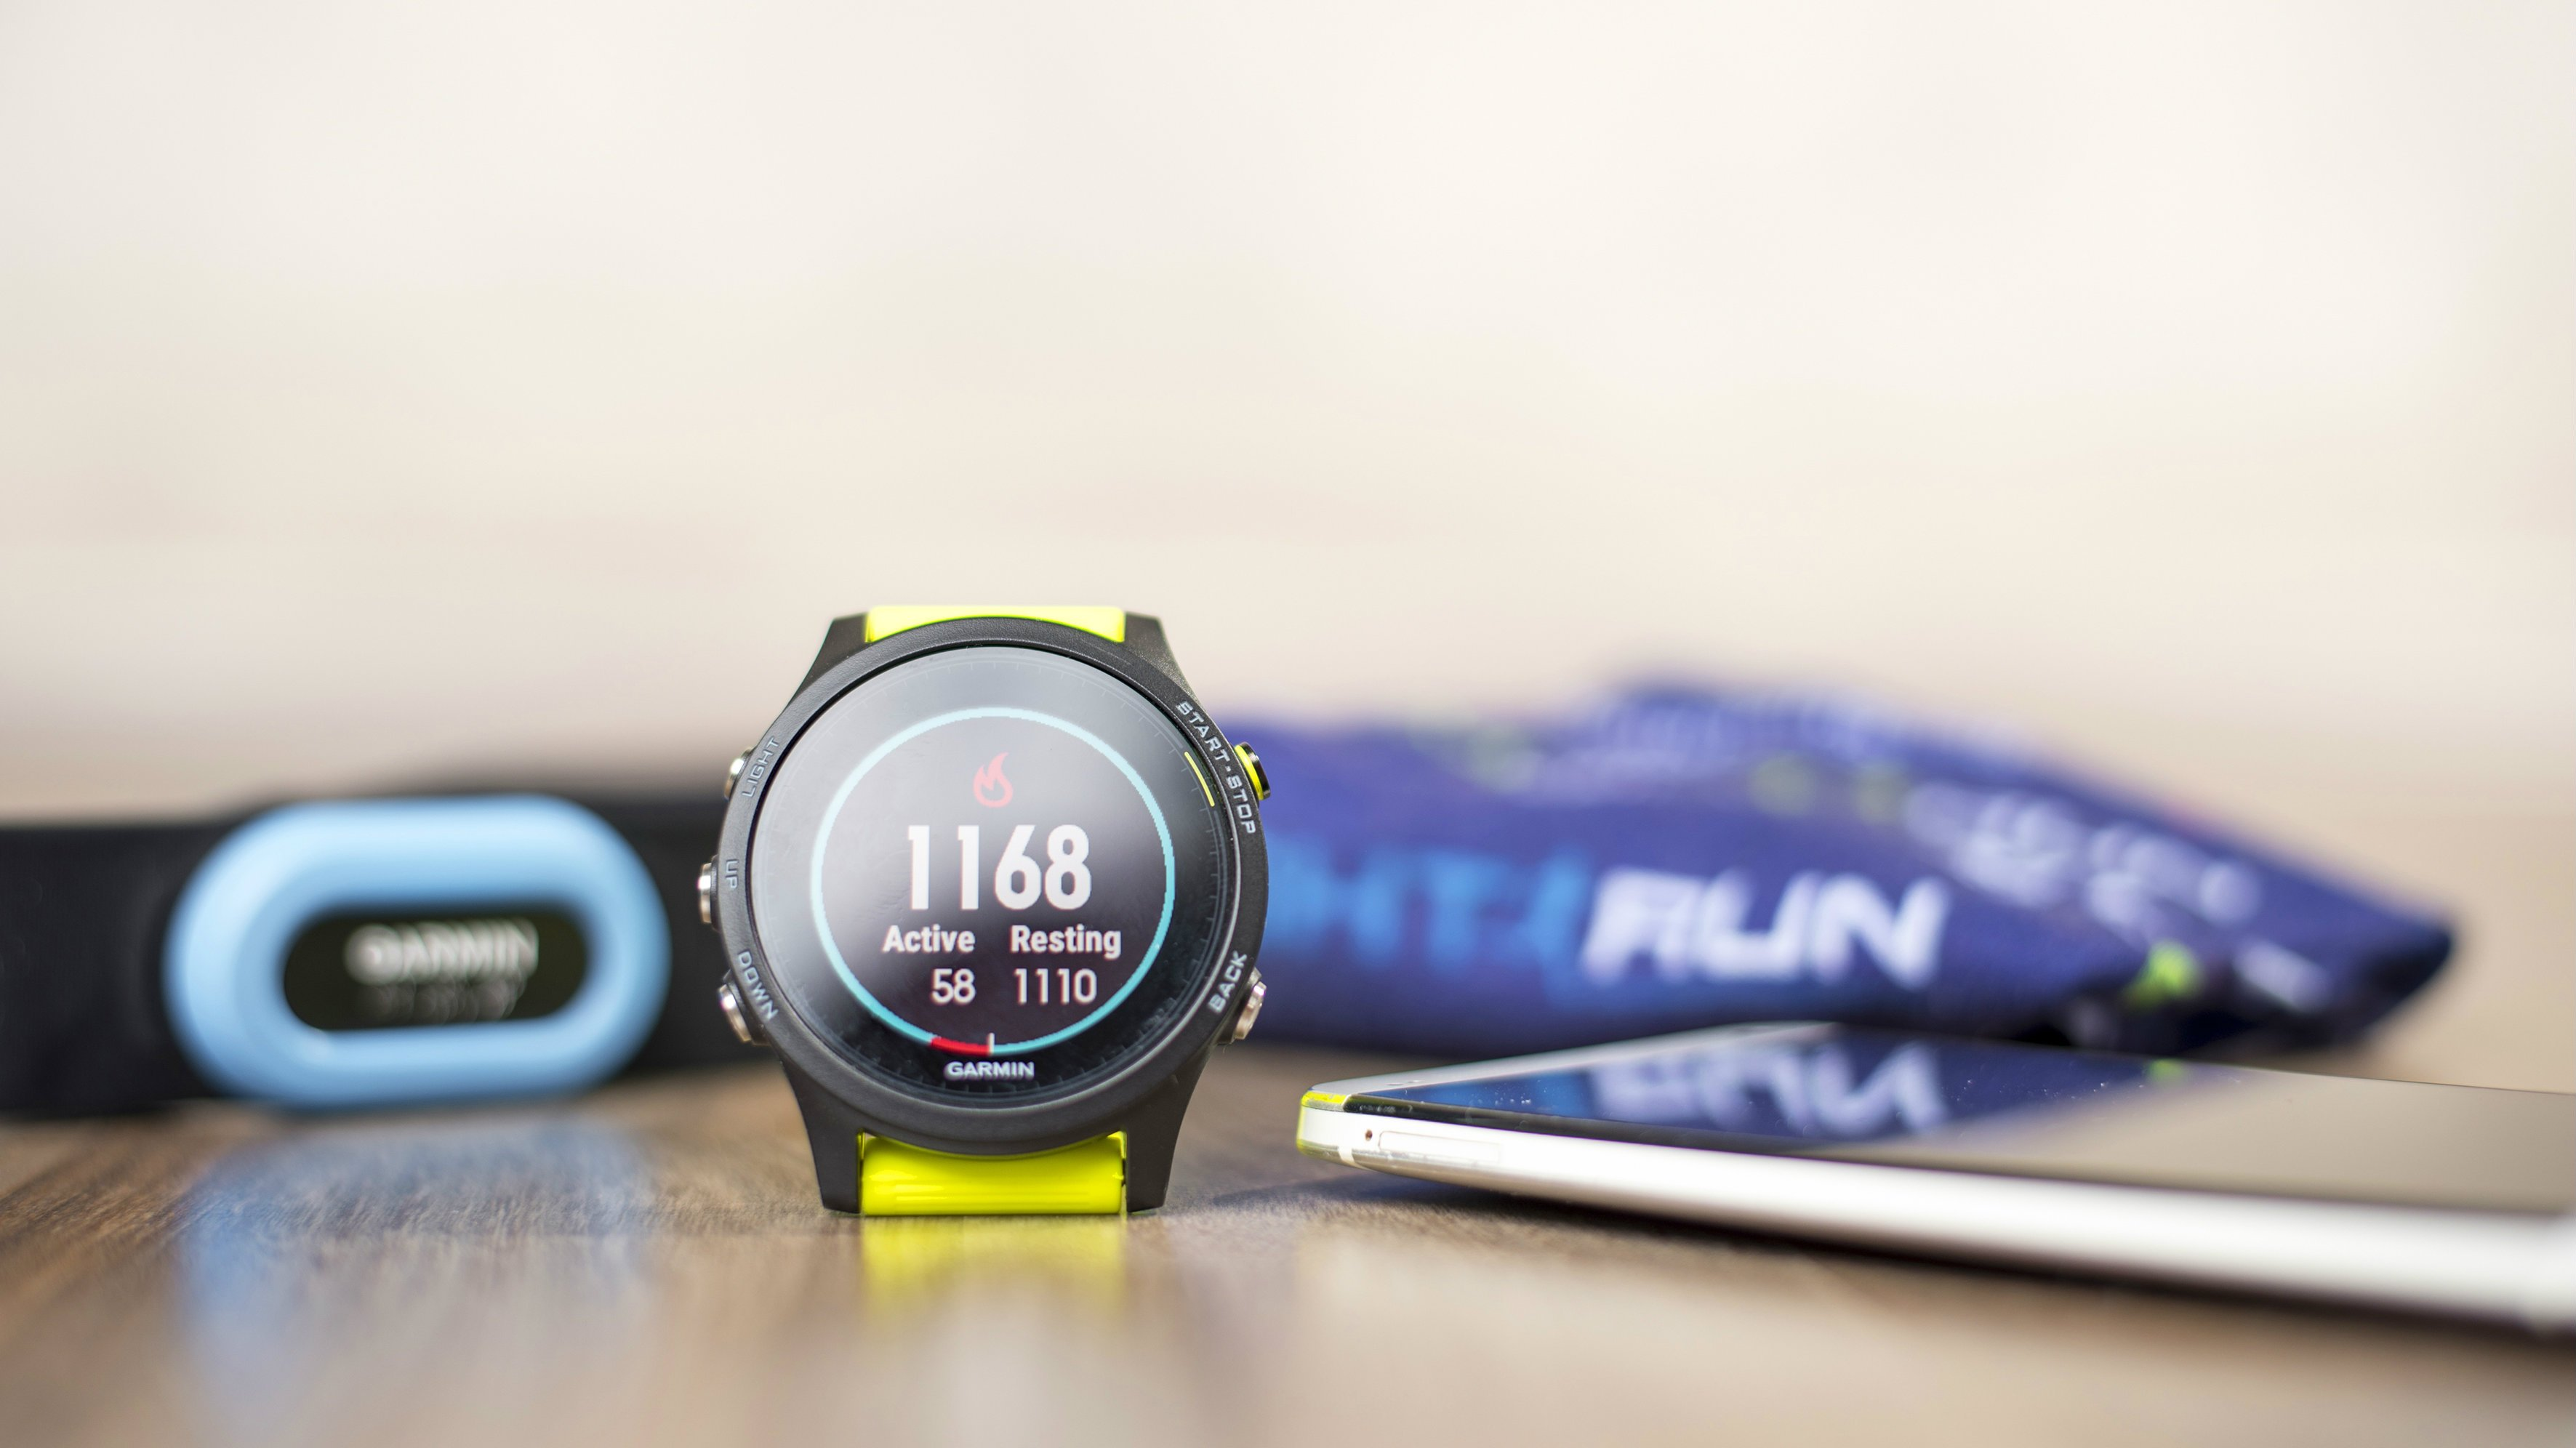 Garmin Sports Watch >> Garmin UK watch models explained: Our pick of the best Garmin sports watches you can buy ...